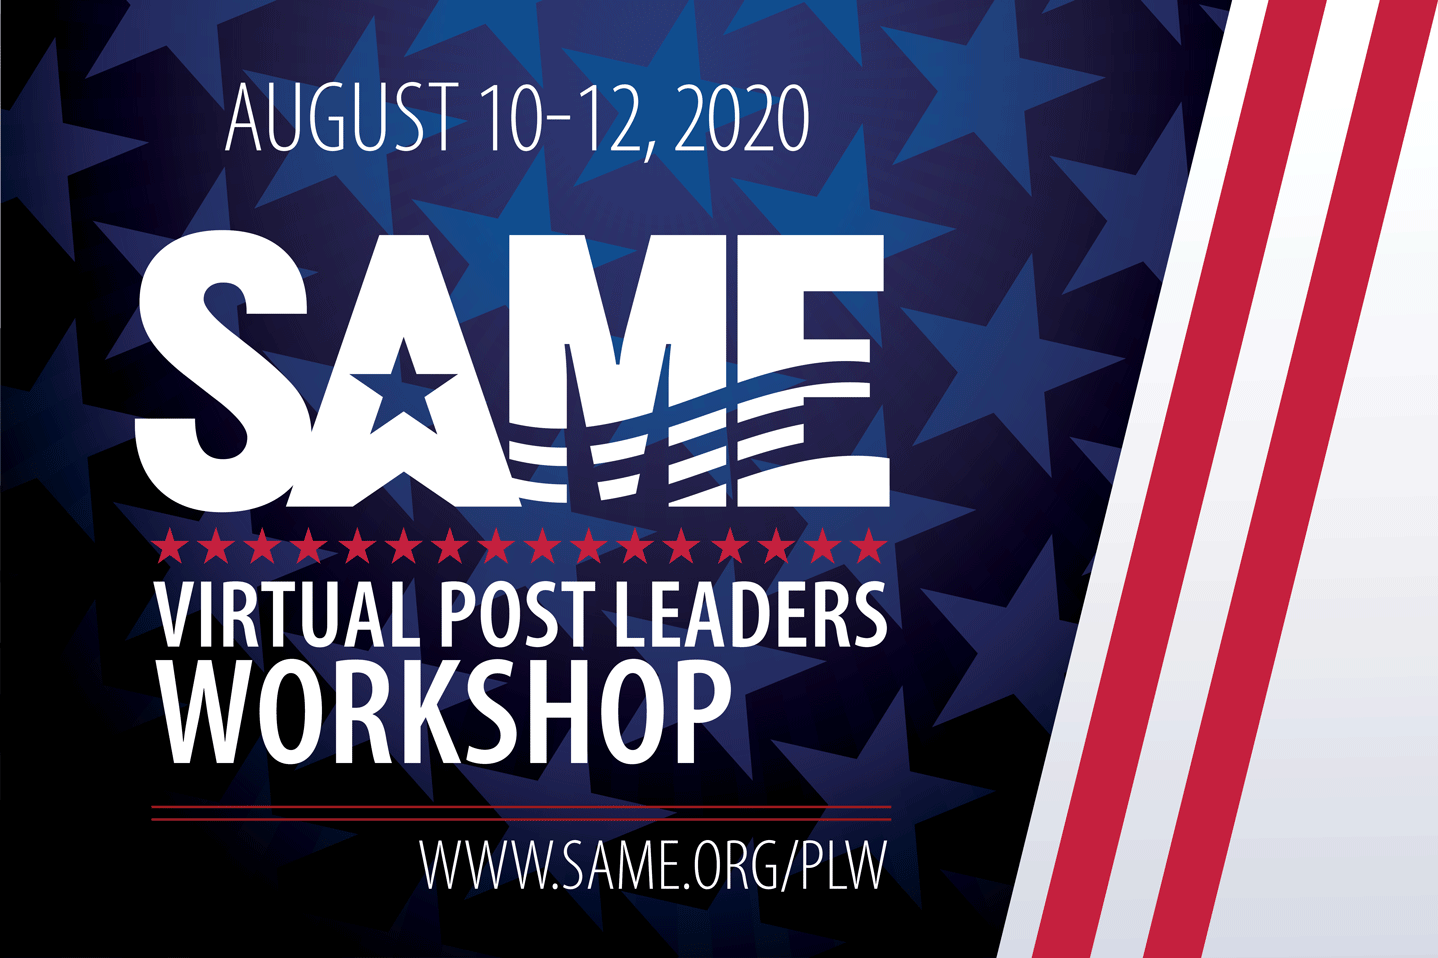 <h2>Virtual Post Leaders Workshop 2020</h2>